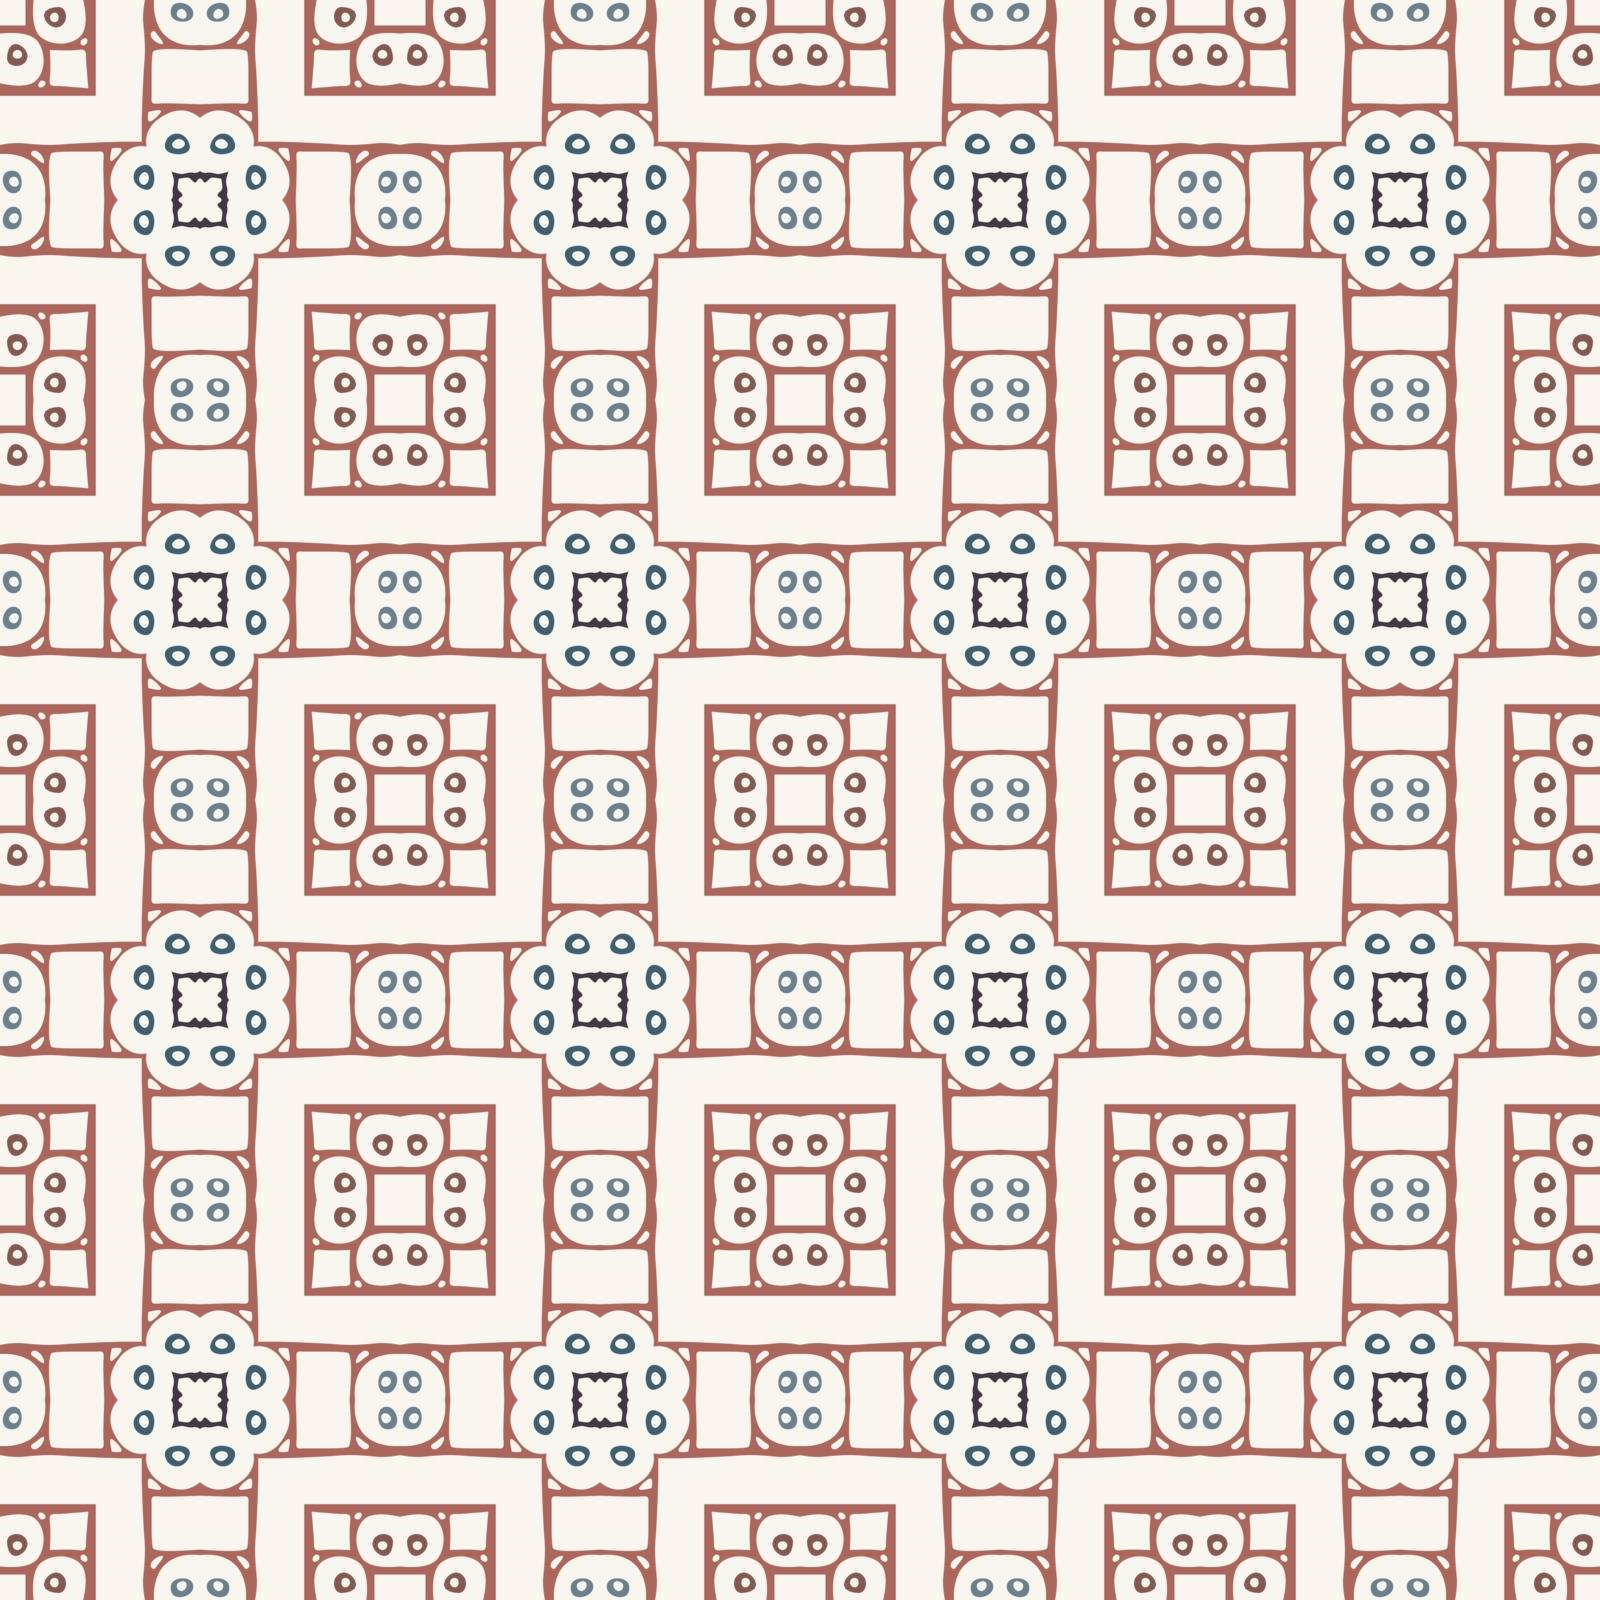 Seamless illustrated pattern made of abstract elements in white, red and blue